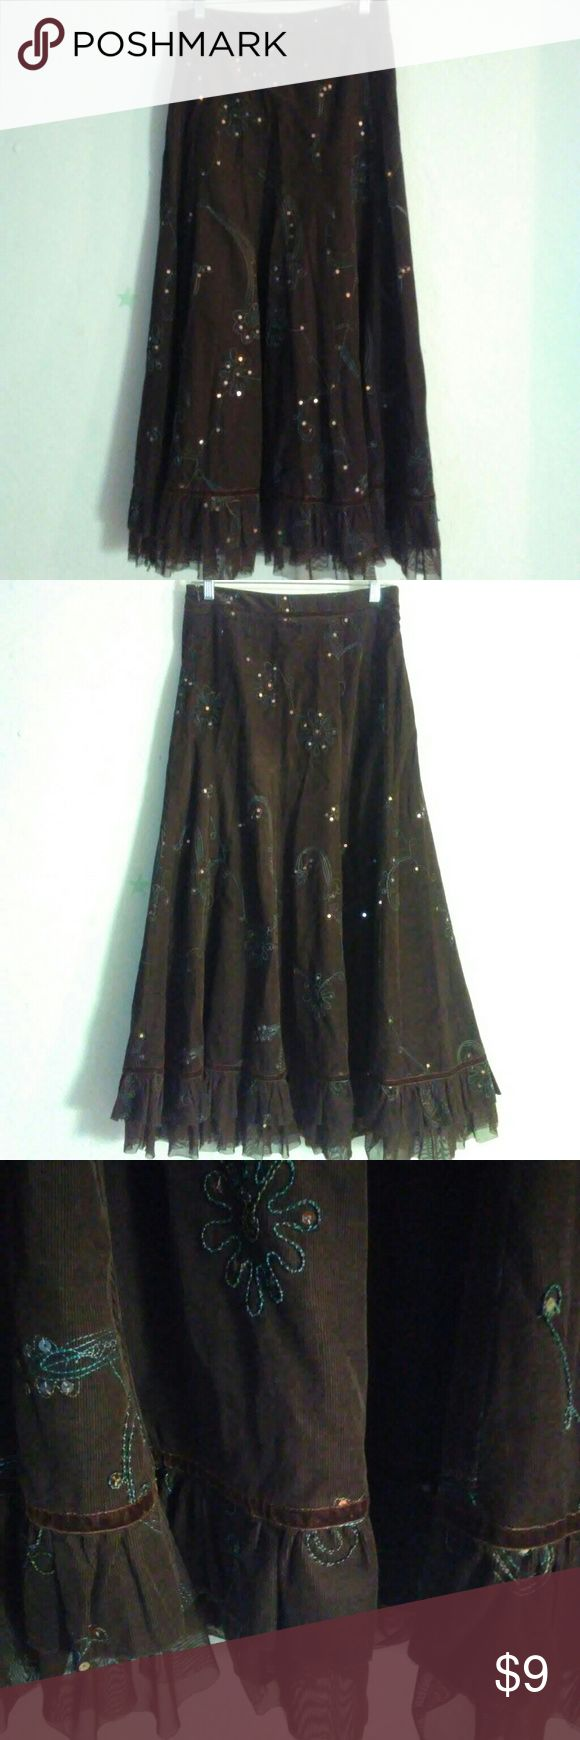 """Tribal Maxi skirt embroidered and sequin detail Gently worn Size 4 Zip closure  Waist 30"""" Length 37"""" Hip 42"""" Dark brown corduroy maxi skirt Tribal Skirts"""